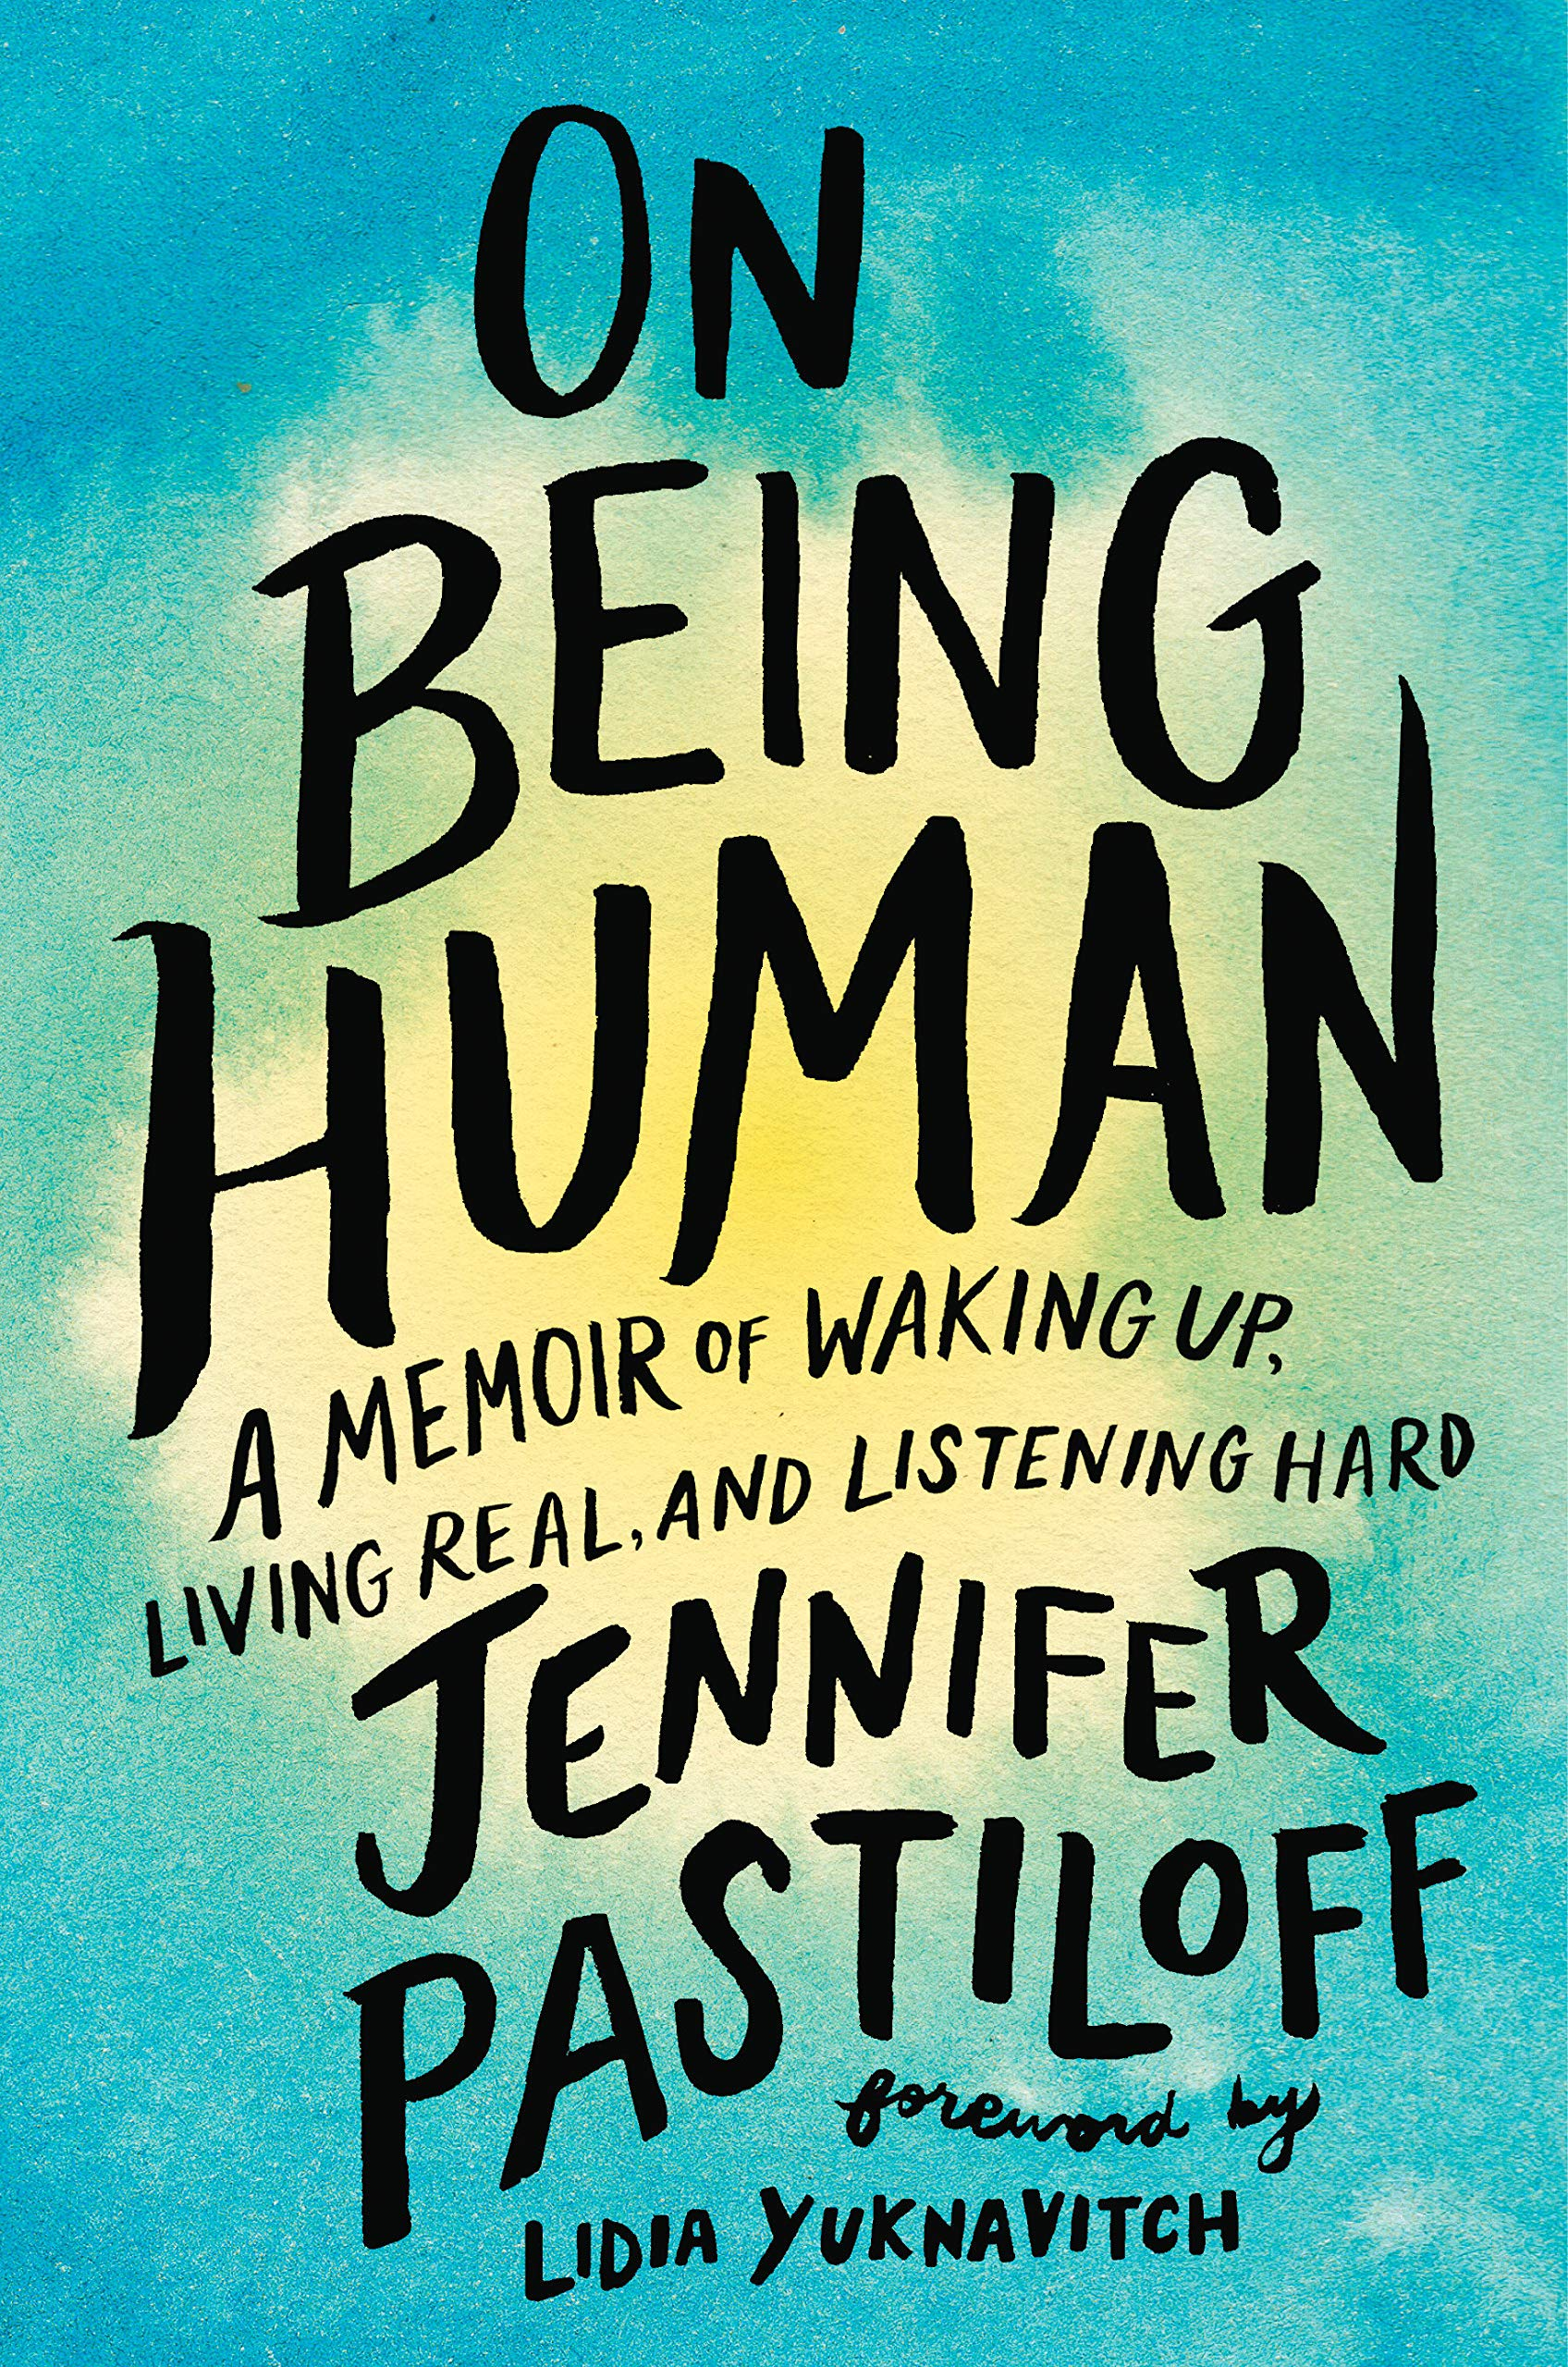 On Being Human: A Memoir of Waking Up, Living Real, and Listening